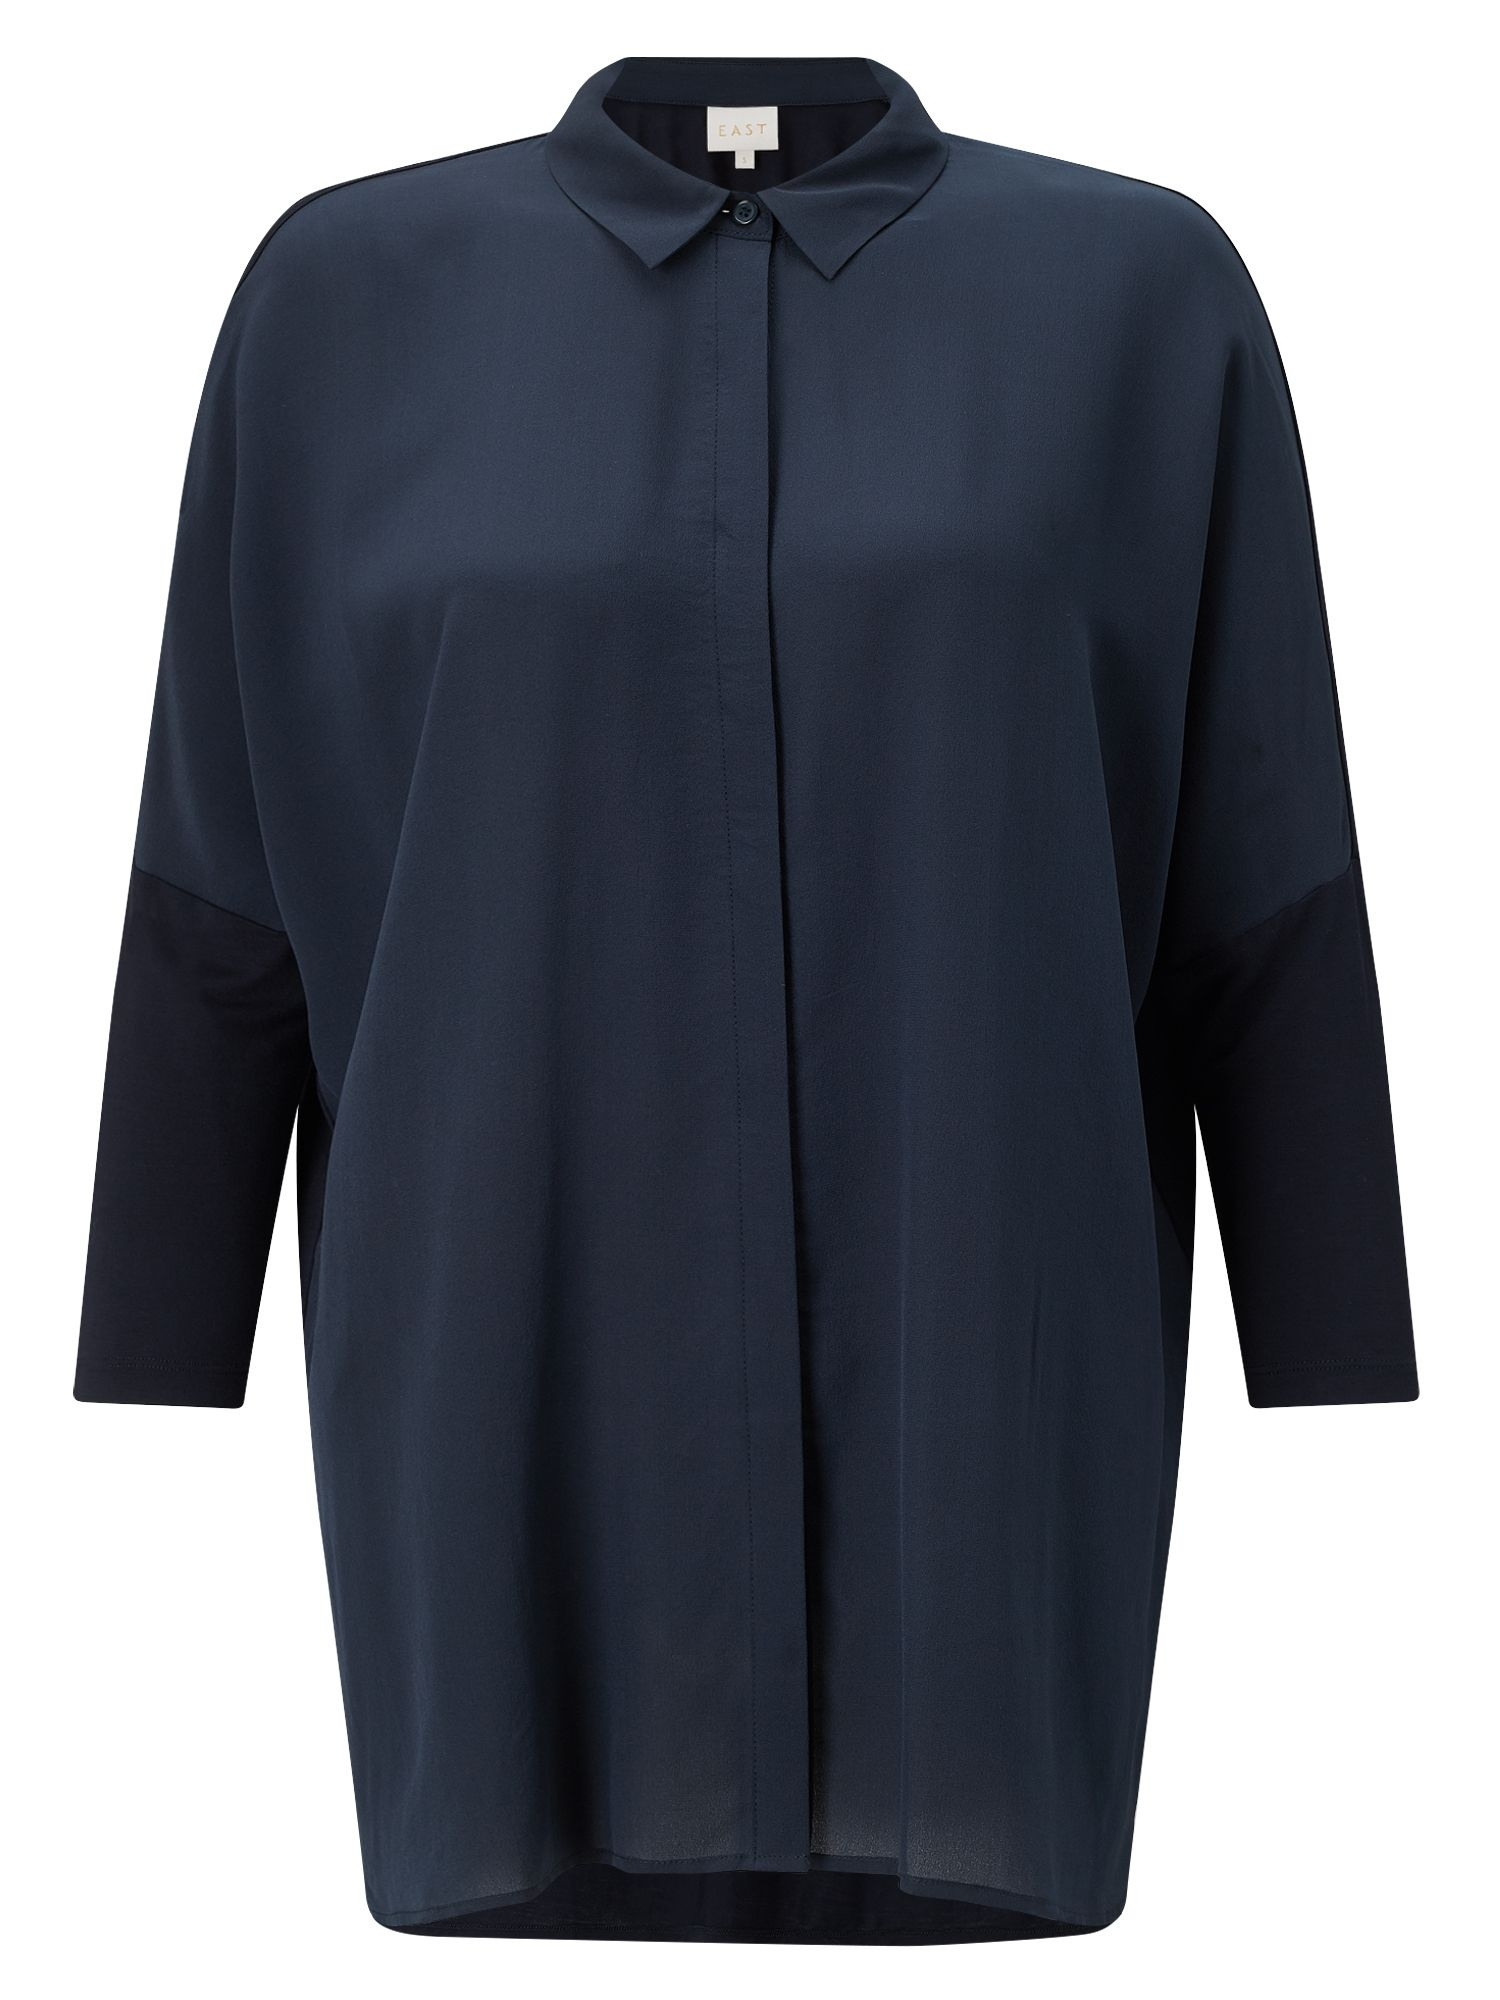 East Jersey Combination Shirt, Blue